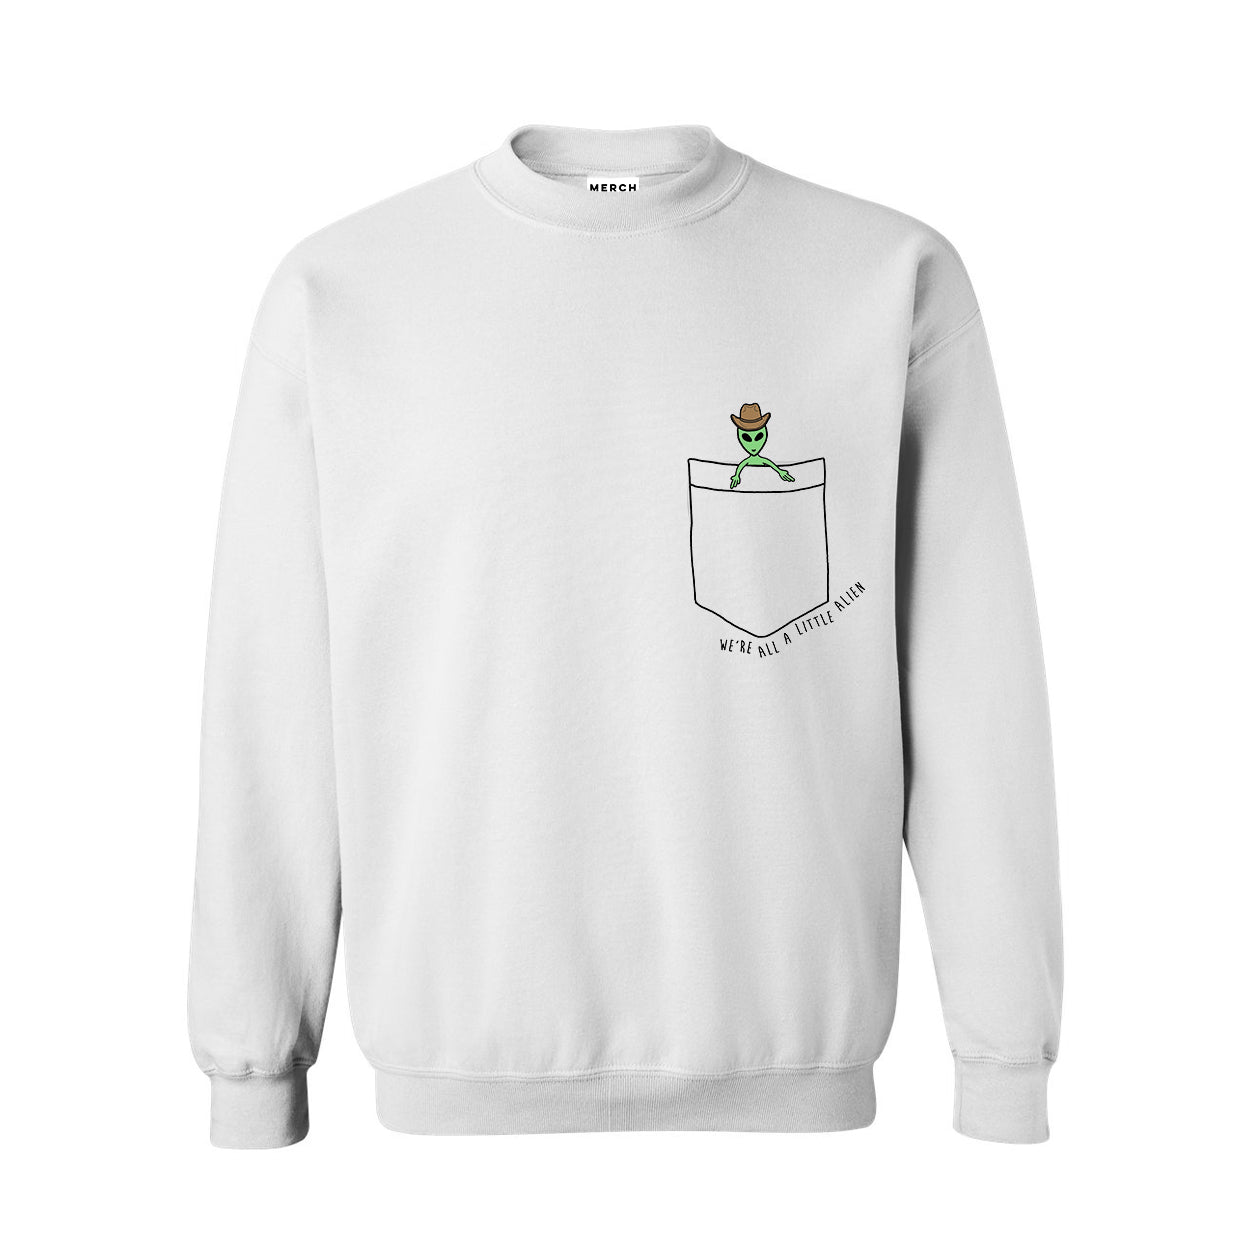 A LITTLE COWBOY CREWNECK SWEATSHIRT